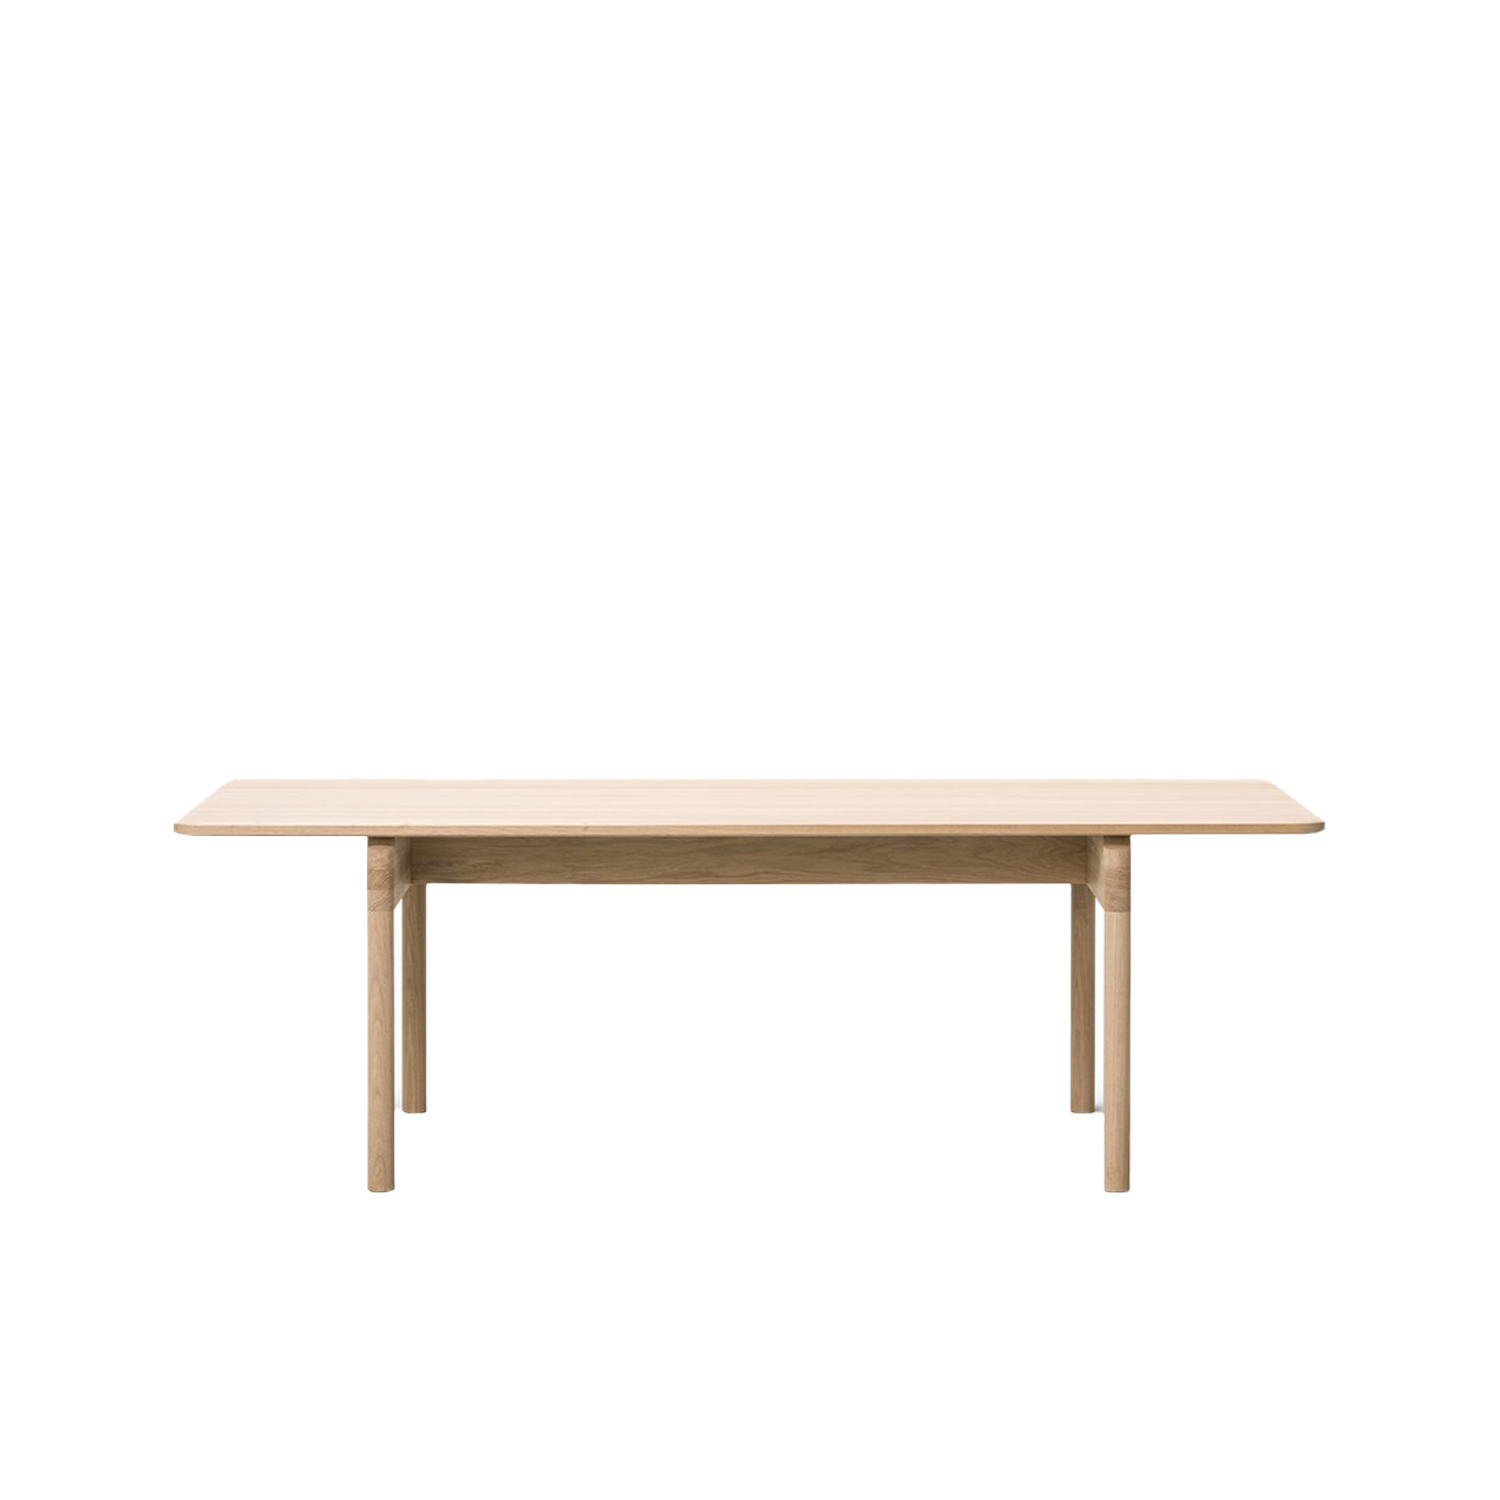 Post 6438 Dining Table - With its long rectangular table top and sturdy cylindrical legs, the Post Table is the perfect merging of functionality, simplicity and serenity in a classic design expressed with modern minimalism. The structural frame is exceptionally crafted in solid wood, teamed with a table top in solid oak. Enjoy loads of leg room in the wide space between the legs on either end, adding to the appeal of this practical, tactile table for dining or meeting in a residential, corporate or hospitality setting.  The Post Collection is an example of eliminating anything extra in order to solely focus on the essential. For designer Cecilie Manz, creating is about examining the purpose of a piece of furniture. Stripping the concept down to only what's necessary, the form emerges from the function in an expression that's pure and purposeful.  It's this simplicity imbued with a sense of beauty that is at the core of the new Post Collection from Manz. The name is a nod to the former home of the Royal Mail, renovated into our flagship showroom in Copenhagen Clean, uncluttered lines are the signature traits of the Post Table and Post Chair, each boasting a solid wood frame that reflects our heritage of wood craftsmanship and appreciation for authentic materials.  The Post Chair is upright and unassuming, with clean, classic lines. The plywood seat and back are light yet sturdy, while the arms offer just enough support with a minimal use of space. Add to that the option of an upholstered seat in leather or fabric, and you have a subtle design that could easily fit into a residential setting, restaurant, café or corporate environment.   The perfect partner is the Post Table, featuring a long rectangular table top and matching cylindrical legs. The solid wood frame provides a stable structure for the streamlined table top available in solid oak. Given the placement of the legs on either end, the result is loads of leg room. An extra advantage to the appeal of this prac